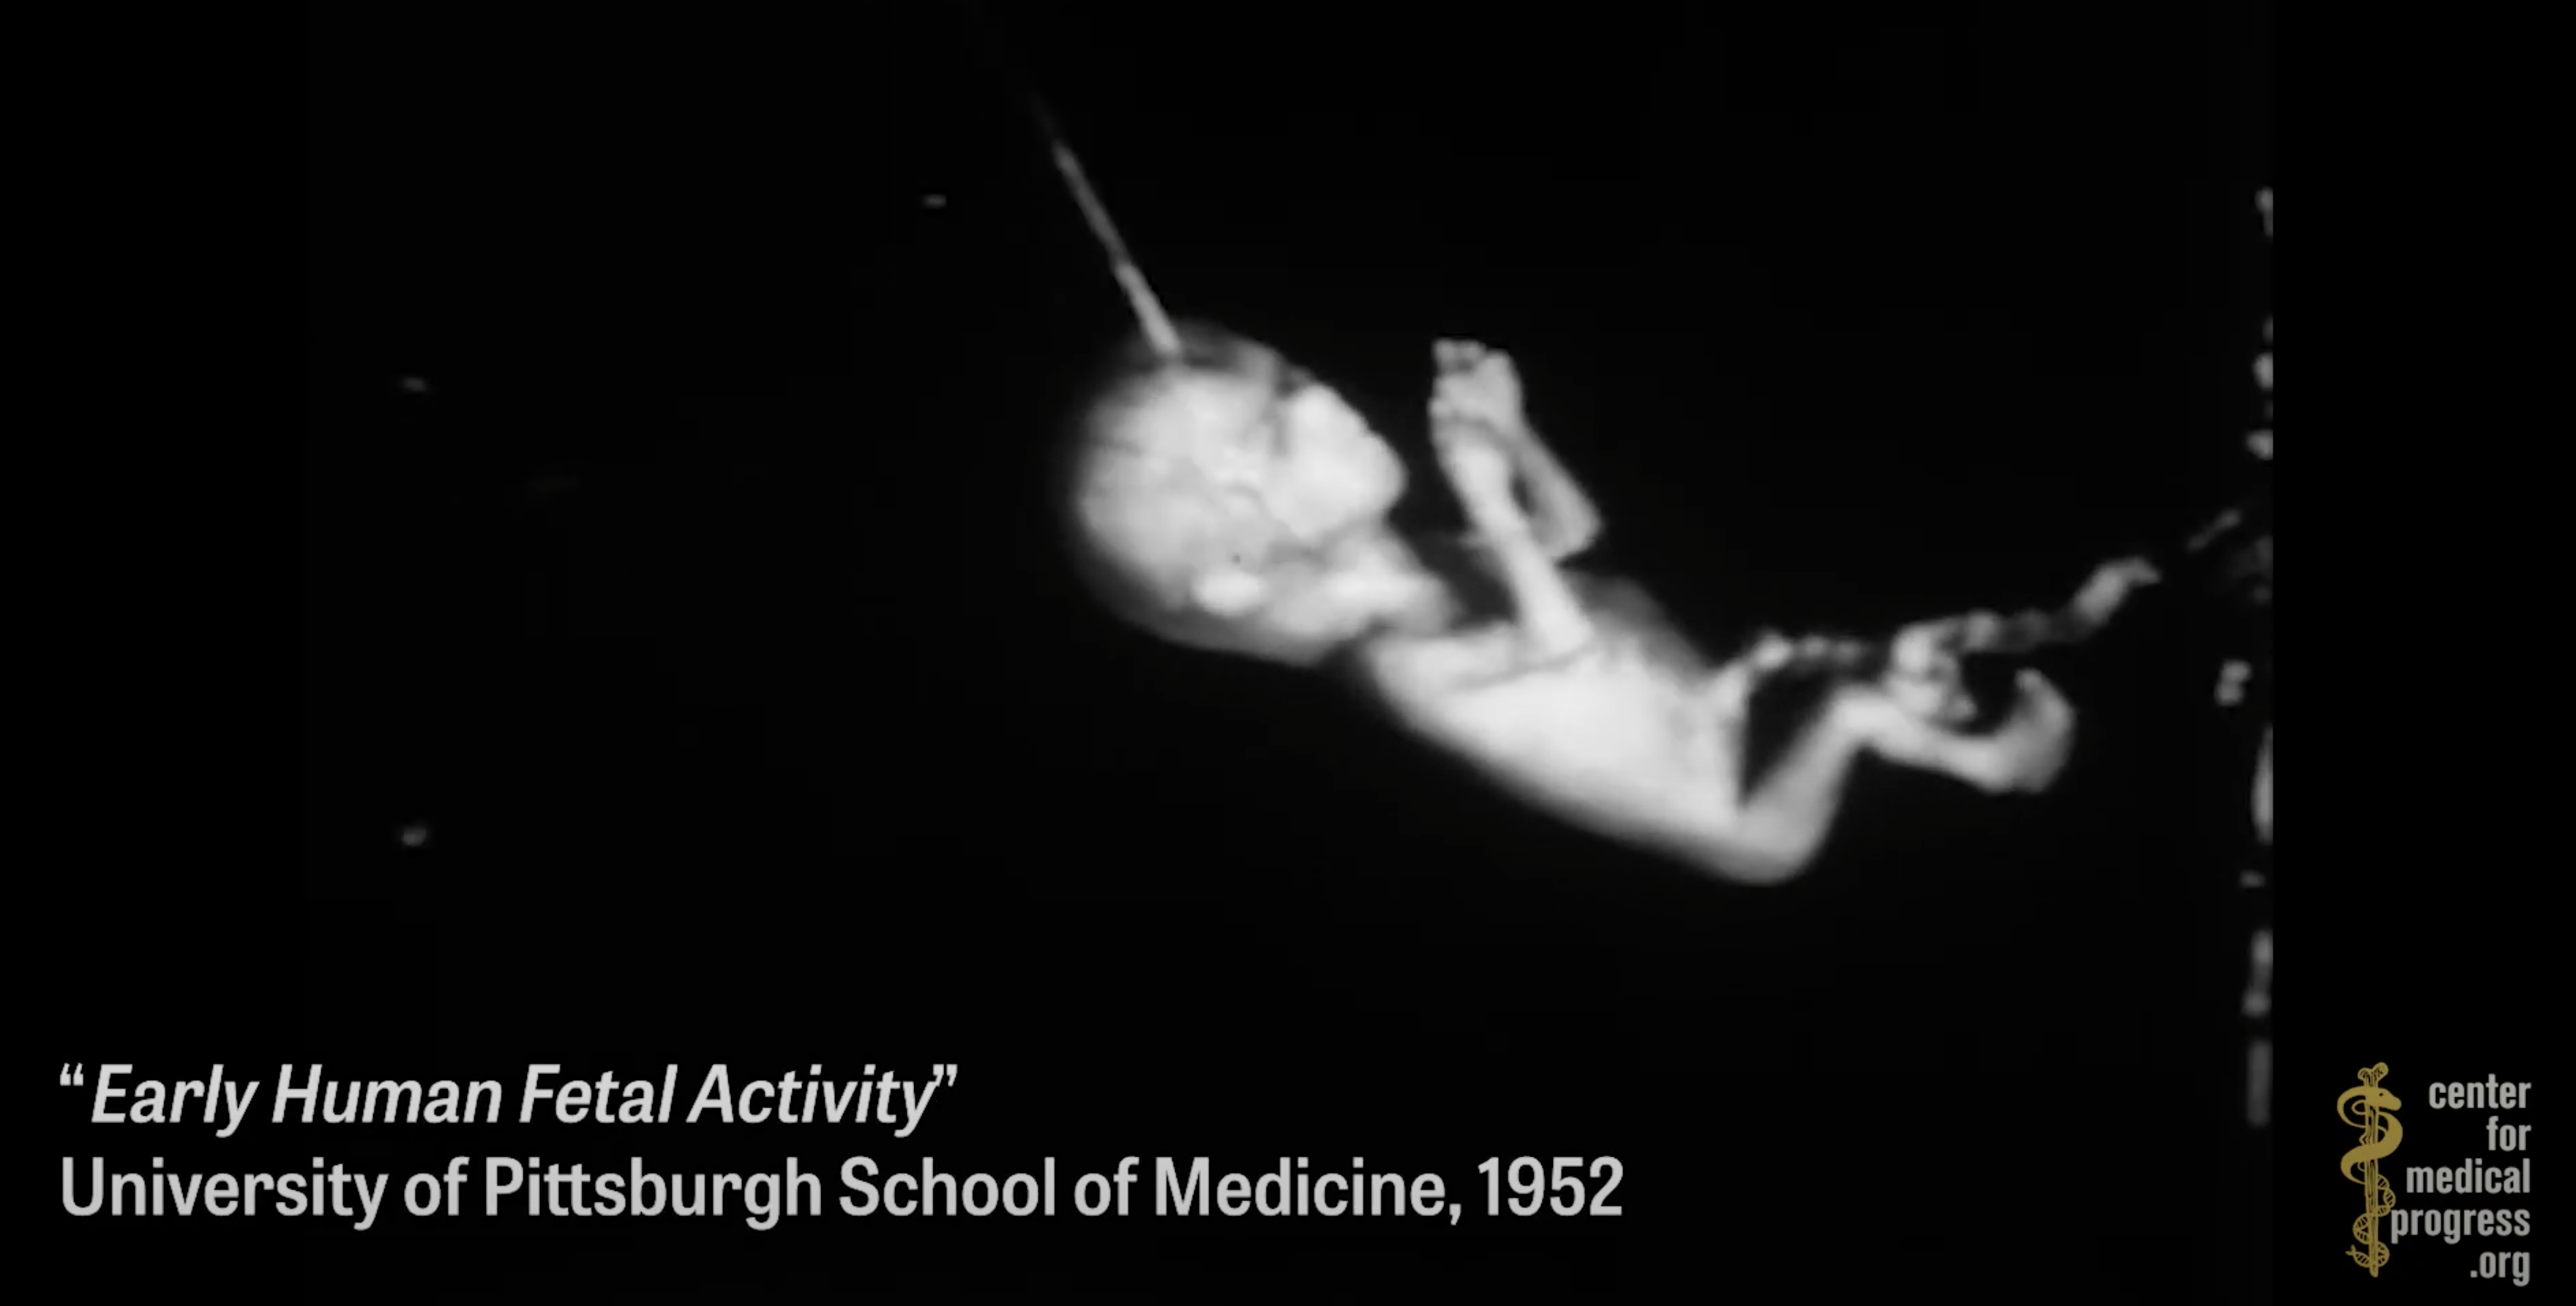 Image: Another TRUE conspiracy reported by Natural News now confirmed reality: Organ harvesting of aborted babies